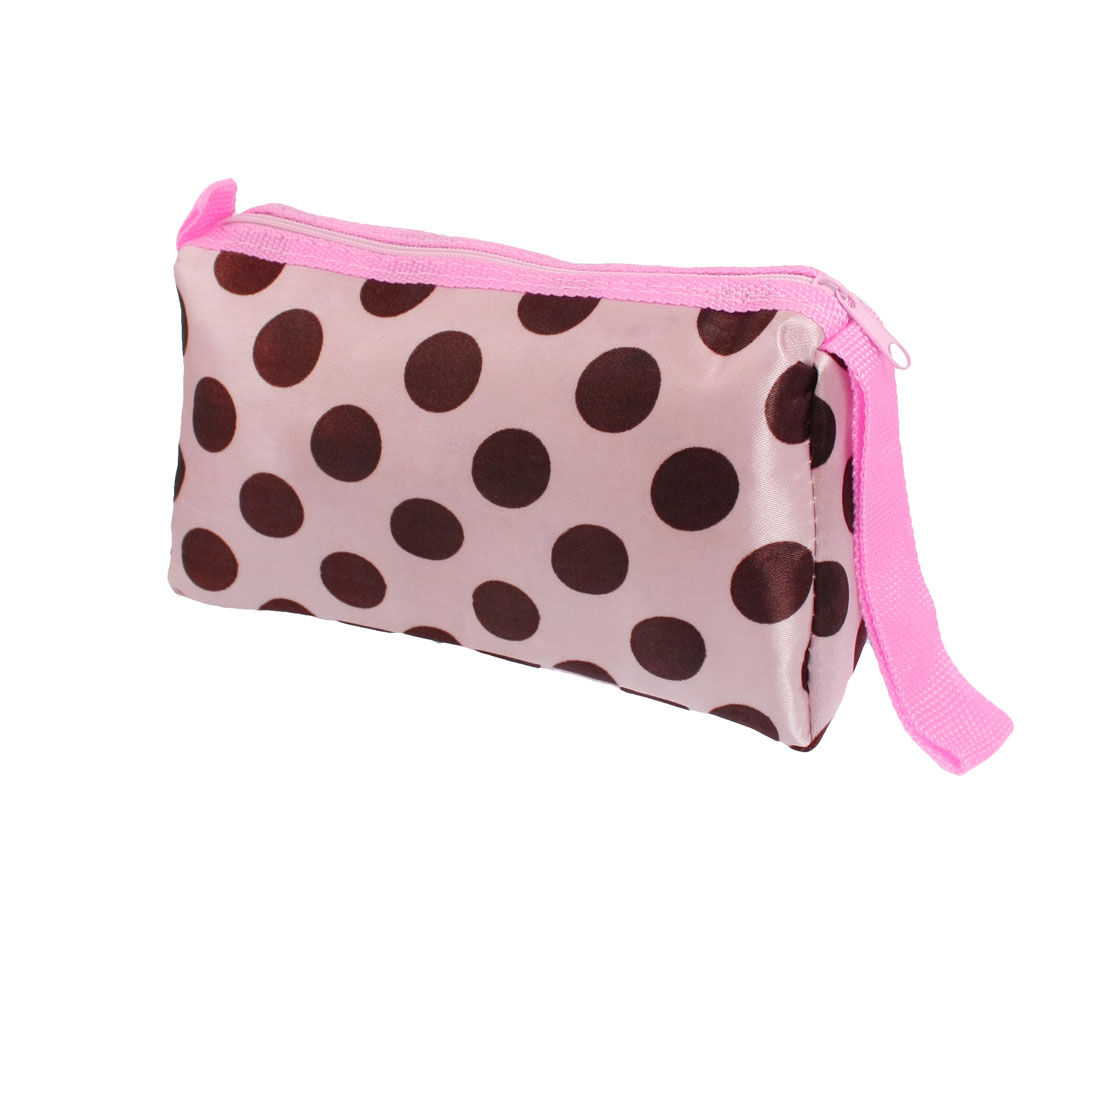 Lady Brown Dot Print Rectangle Zipper Closure Pink Cosmetic Hand Bag w Mirror